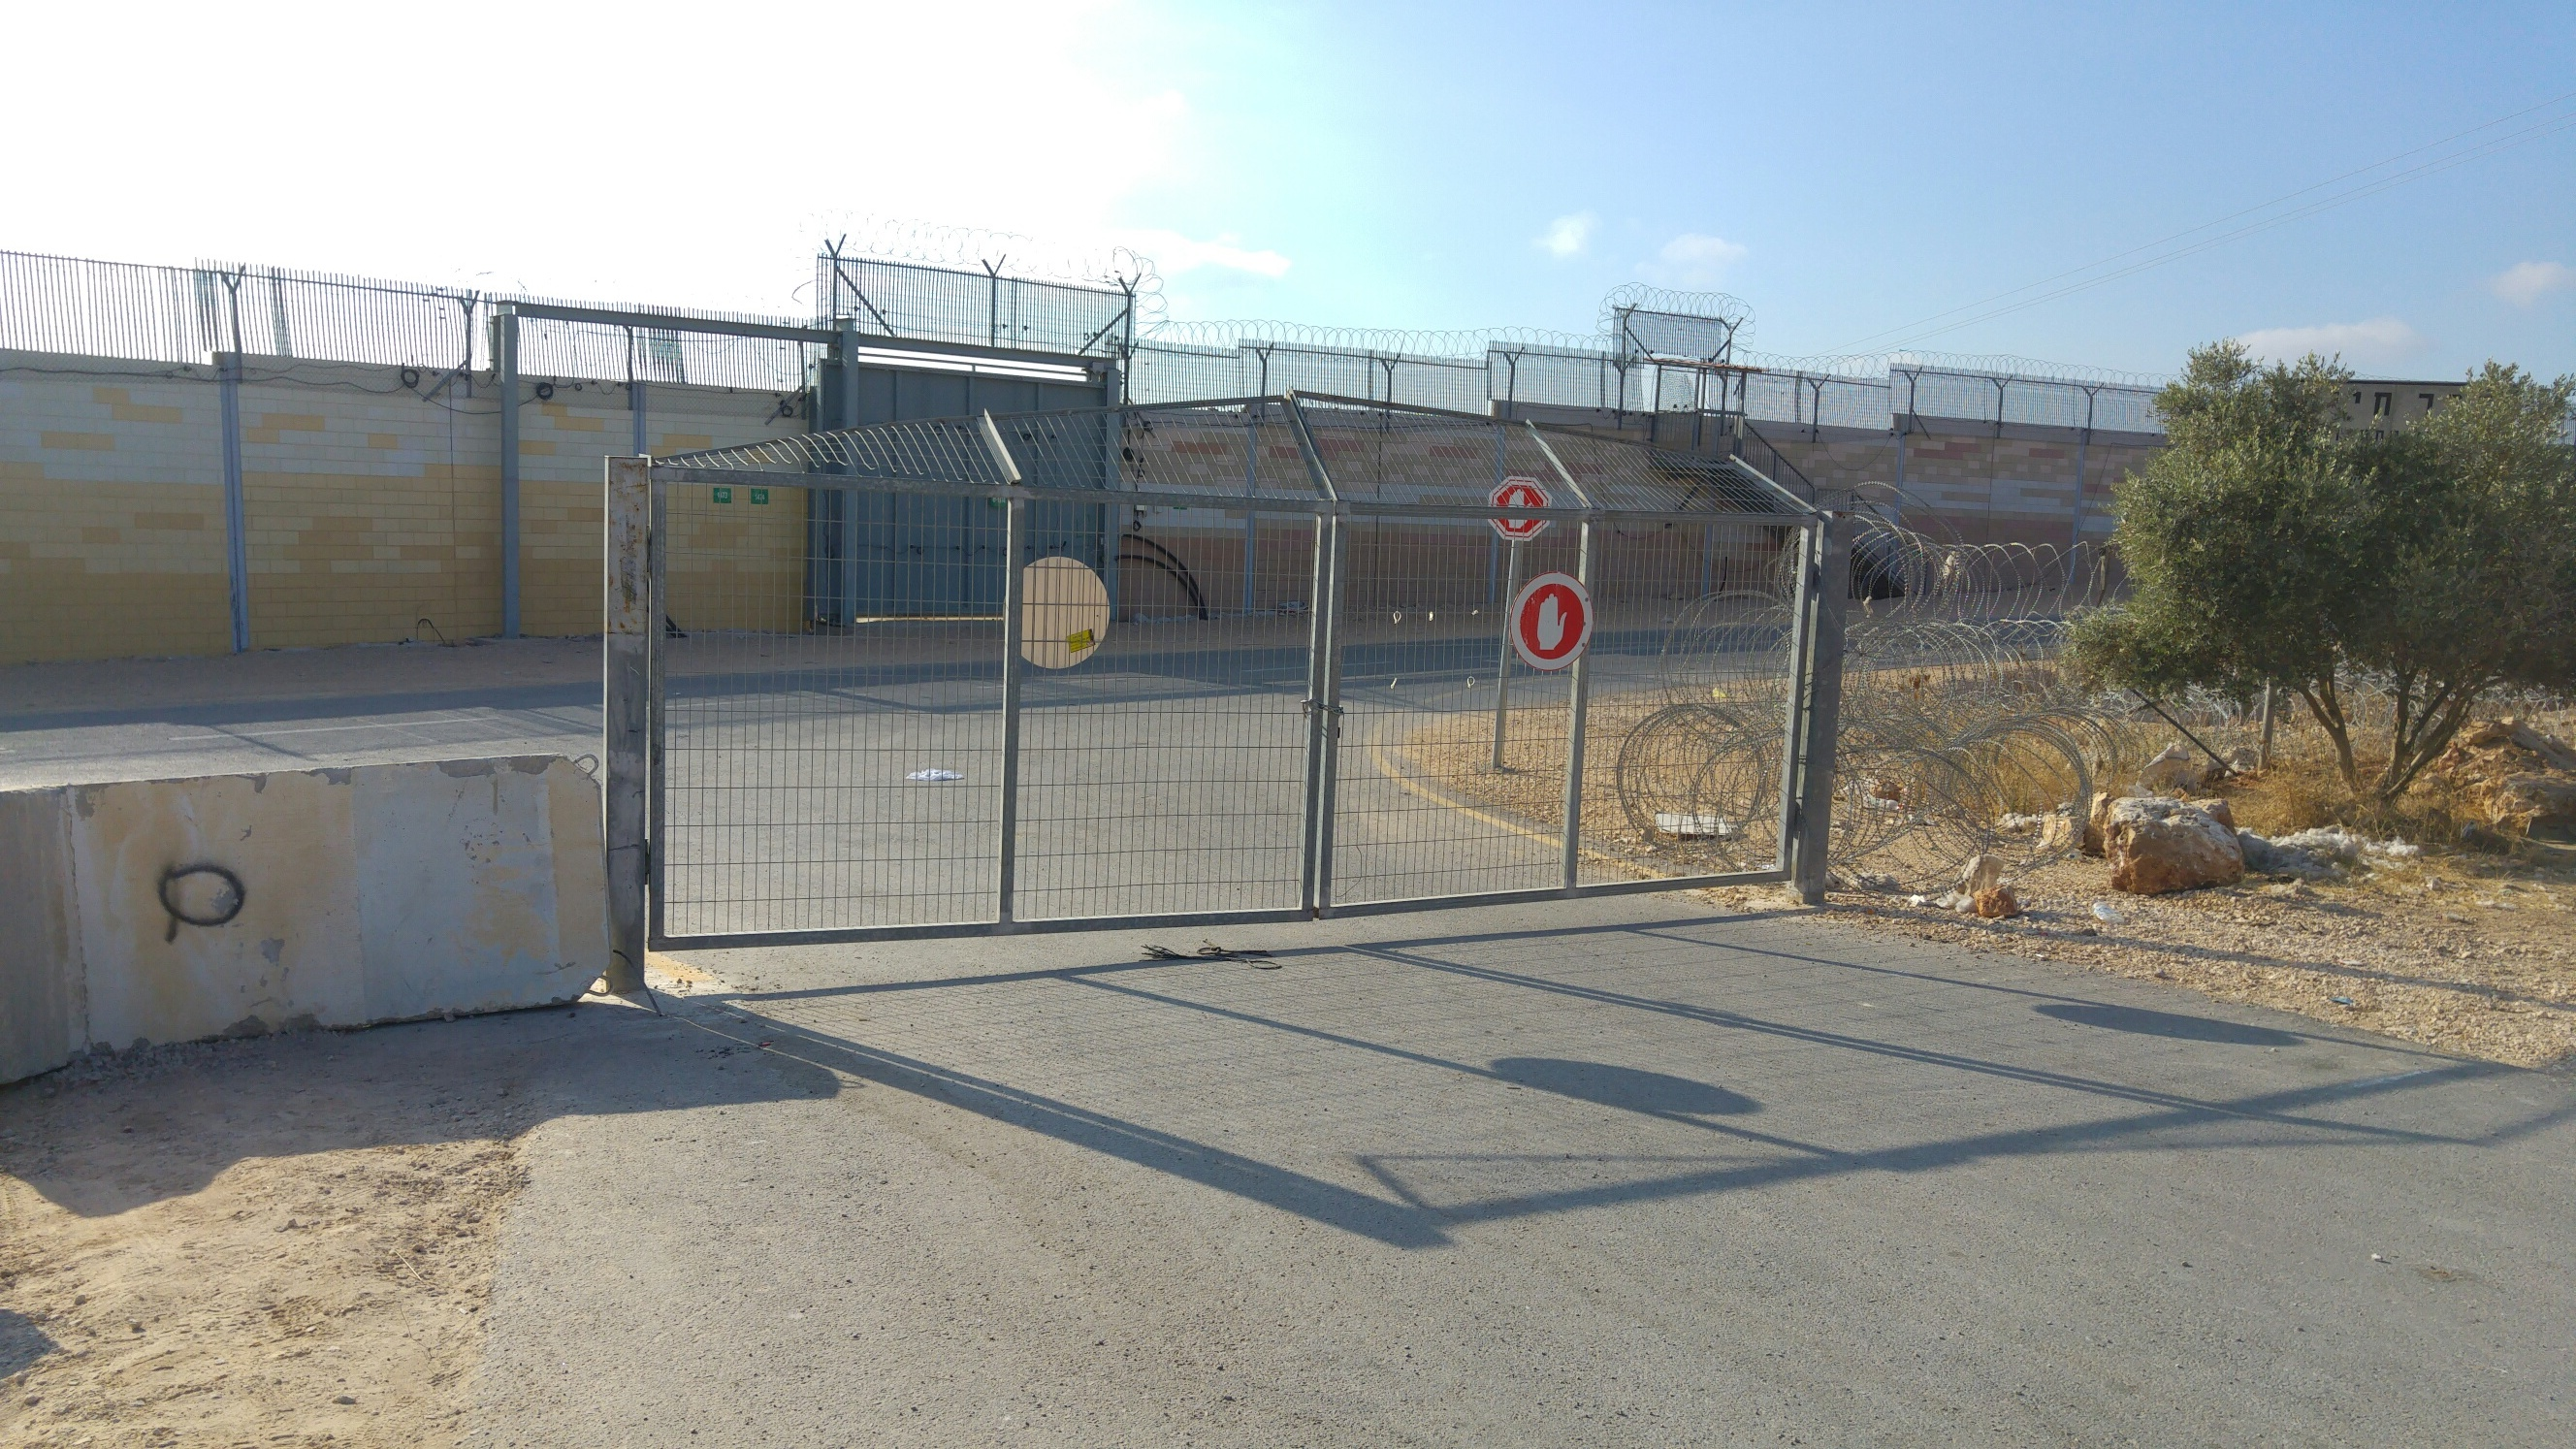 Since the gate between Oranit and the security road is locked the farmers are unable to cross.